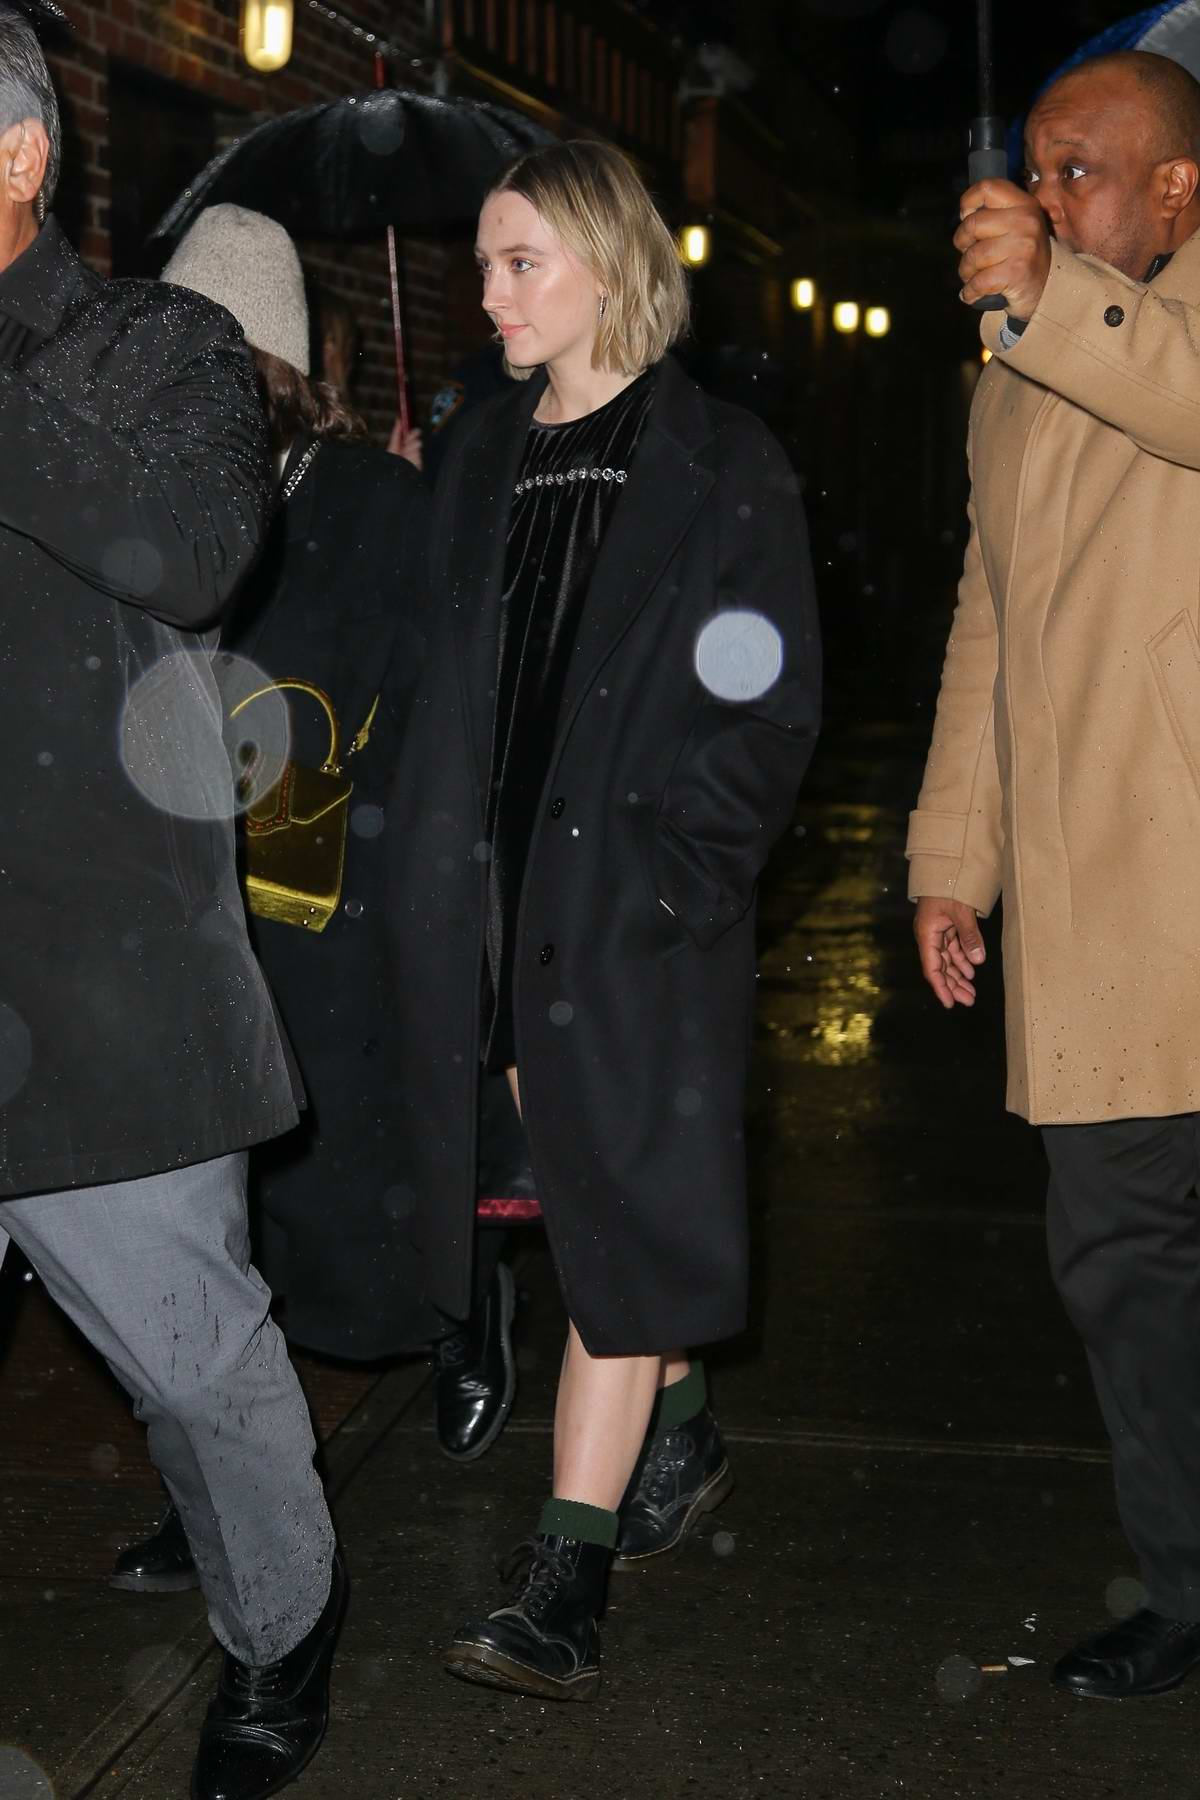 Saoirse Ronan spotted in a black mini dress and black long coat as she steps out in New York City